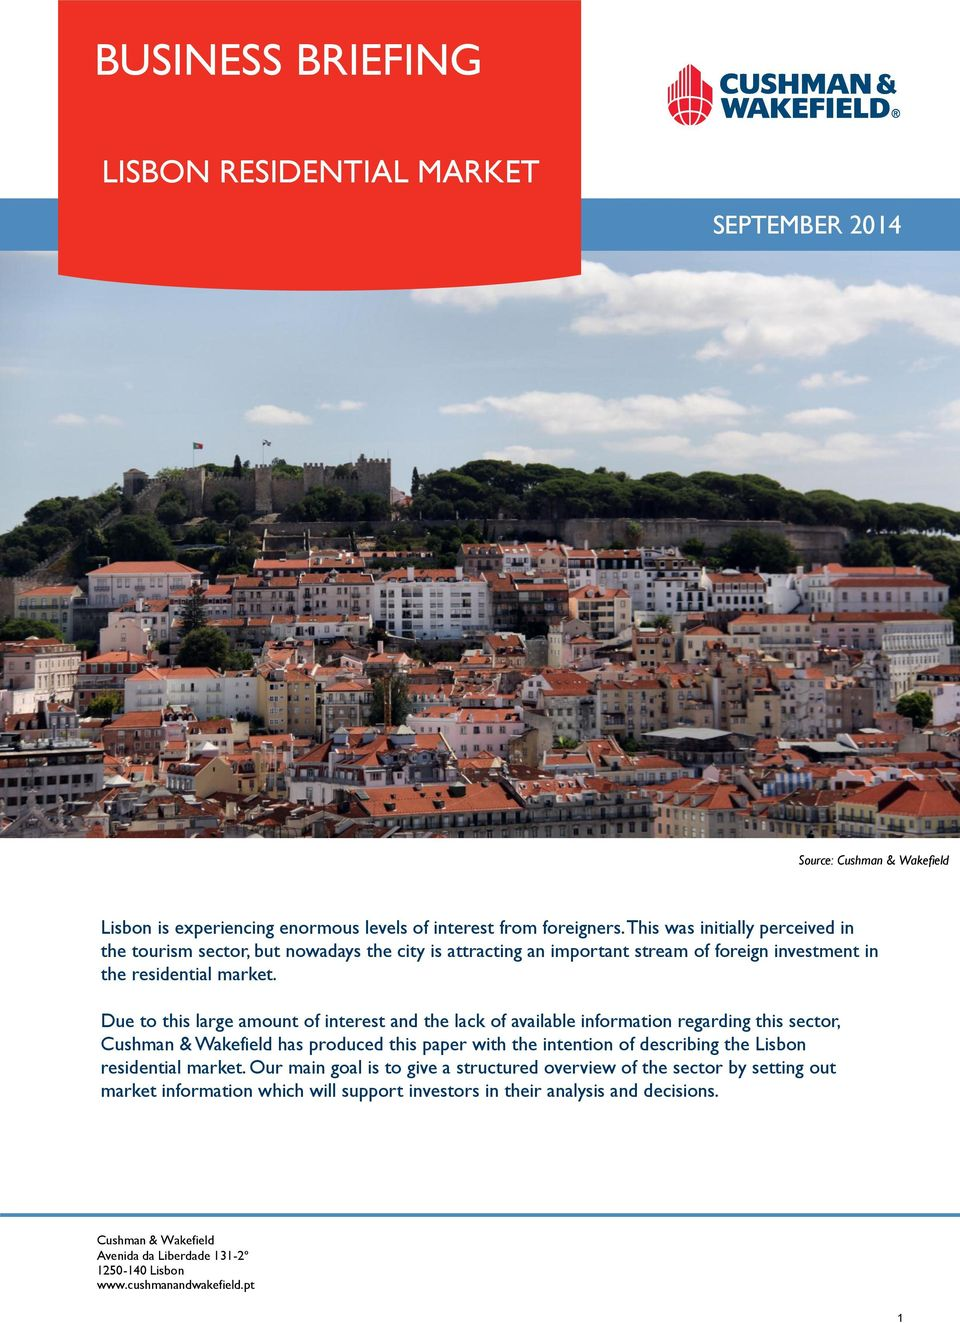 Due to this large amount of interest and the lack of available information regarding this sector, Cushman & Wakefield has produced this paper with the intention of describing the Lisbon